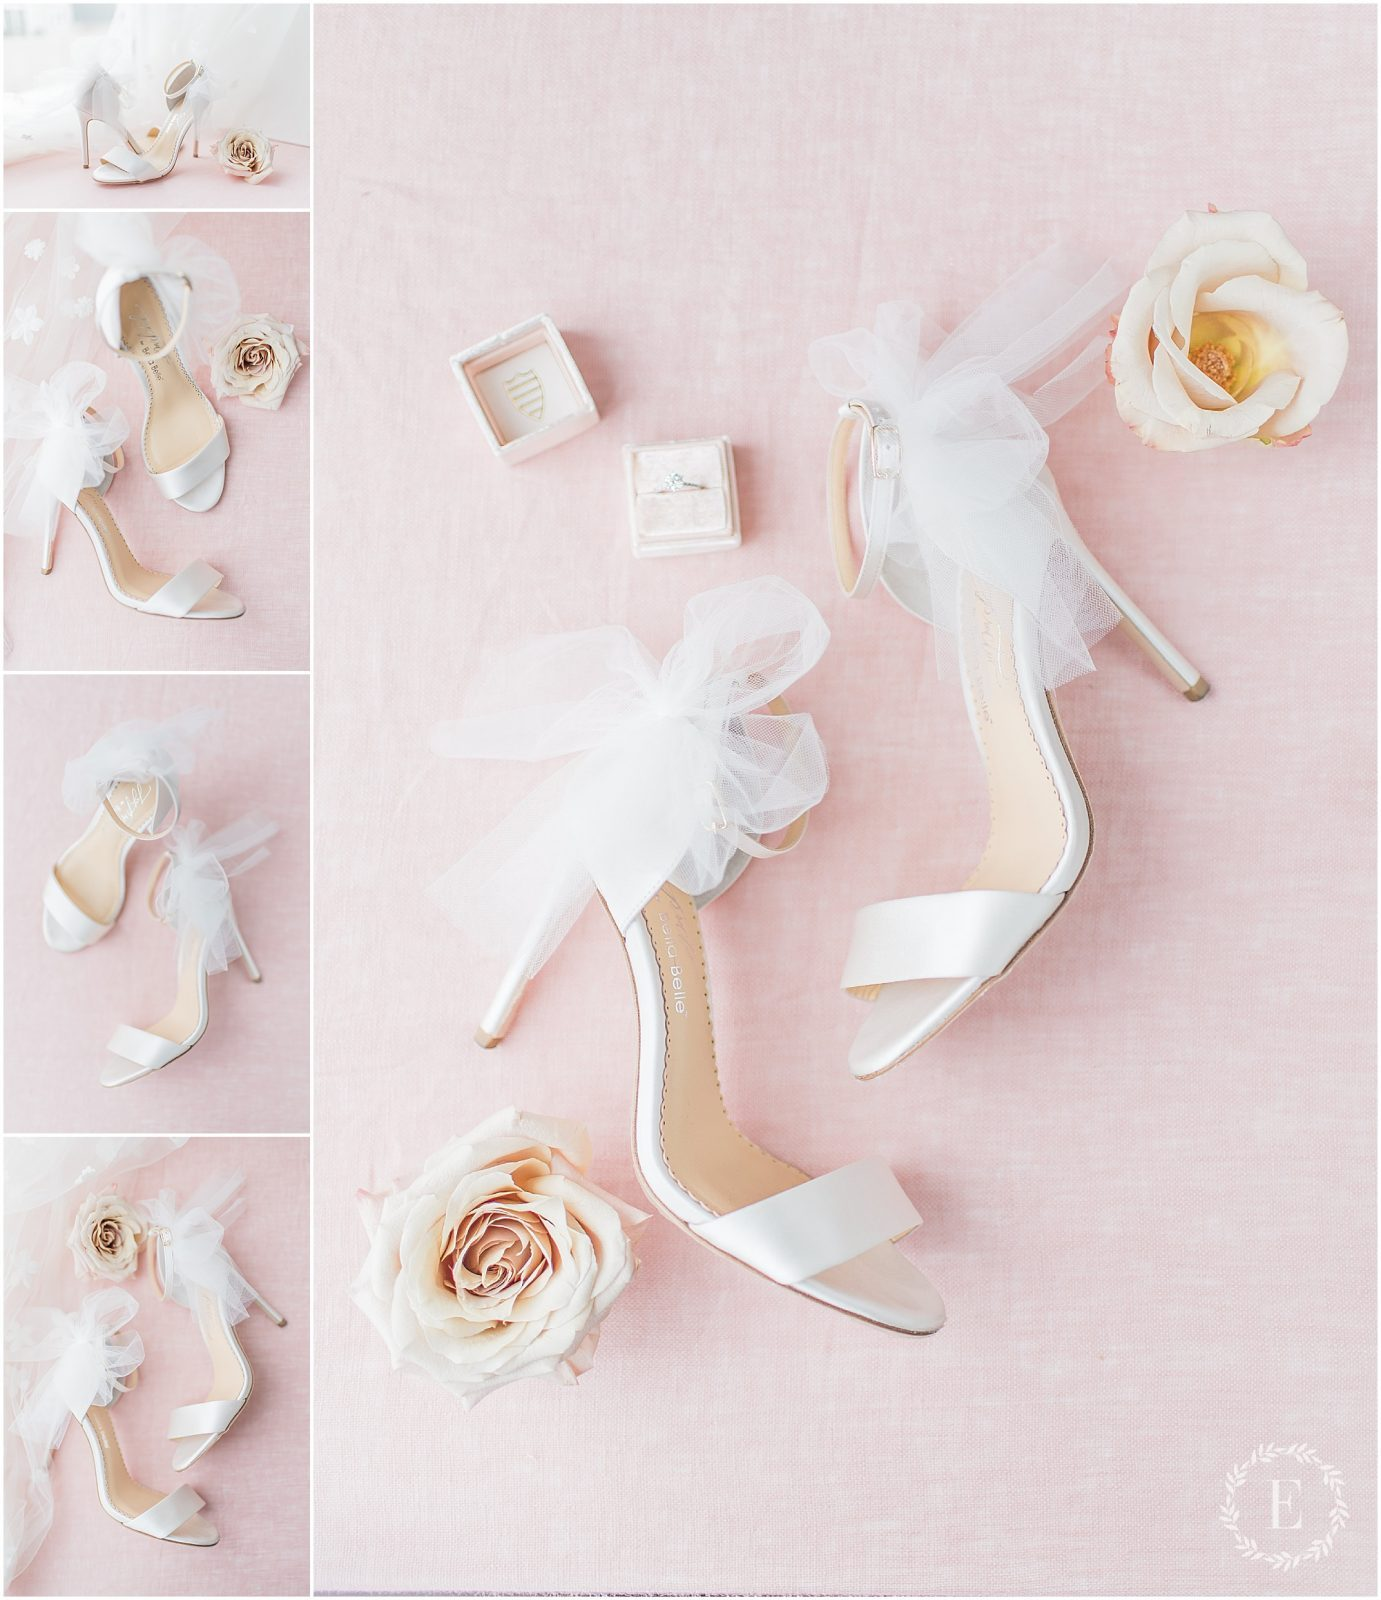 5 - Bella Belle for Fairy Dreams Bridal - tulle and satin wedding sandals